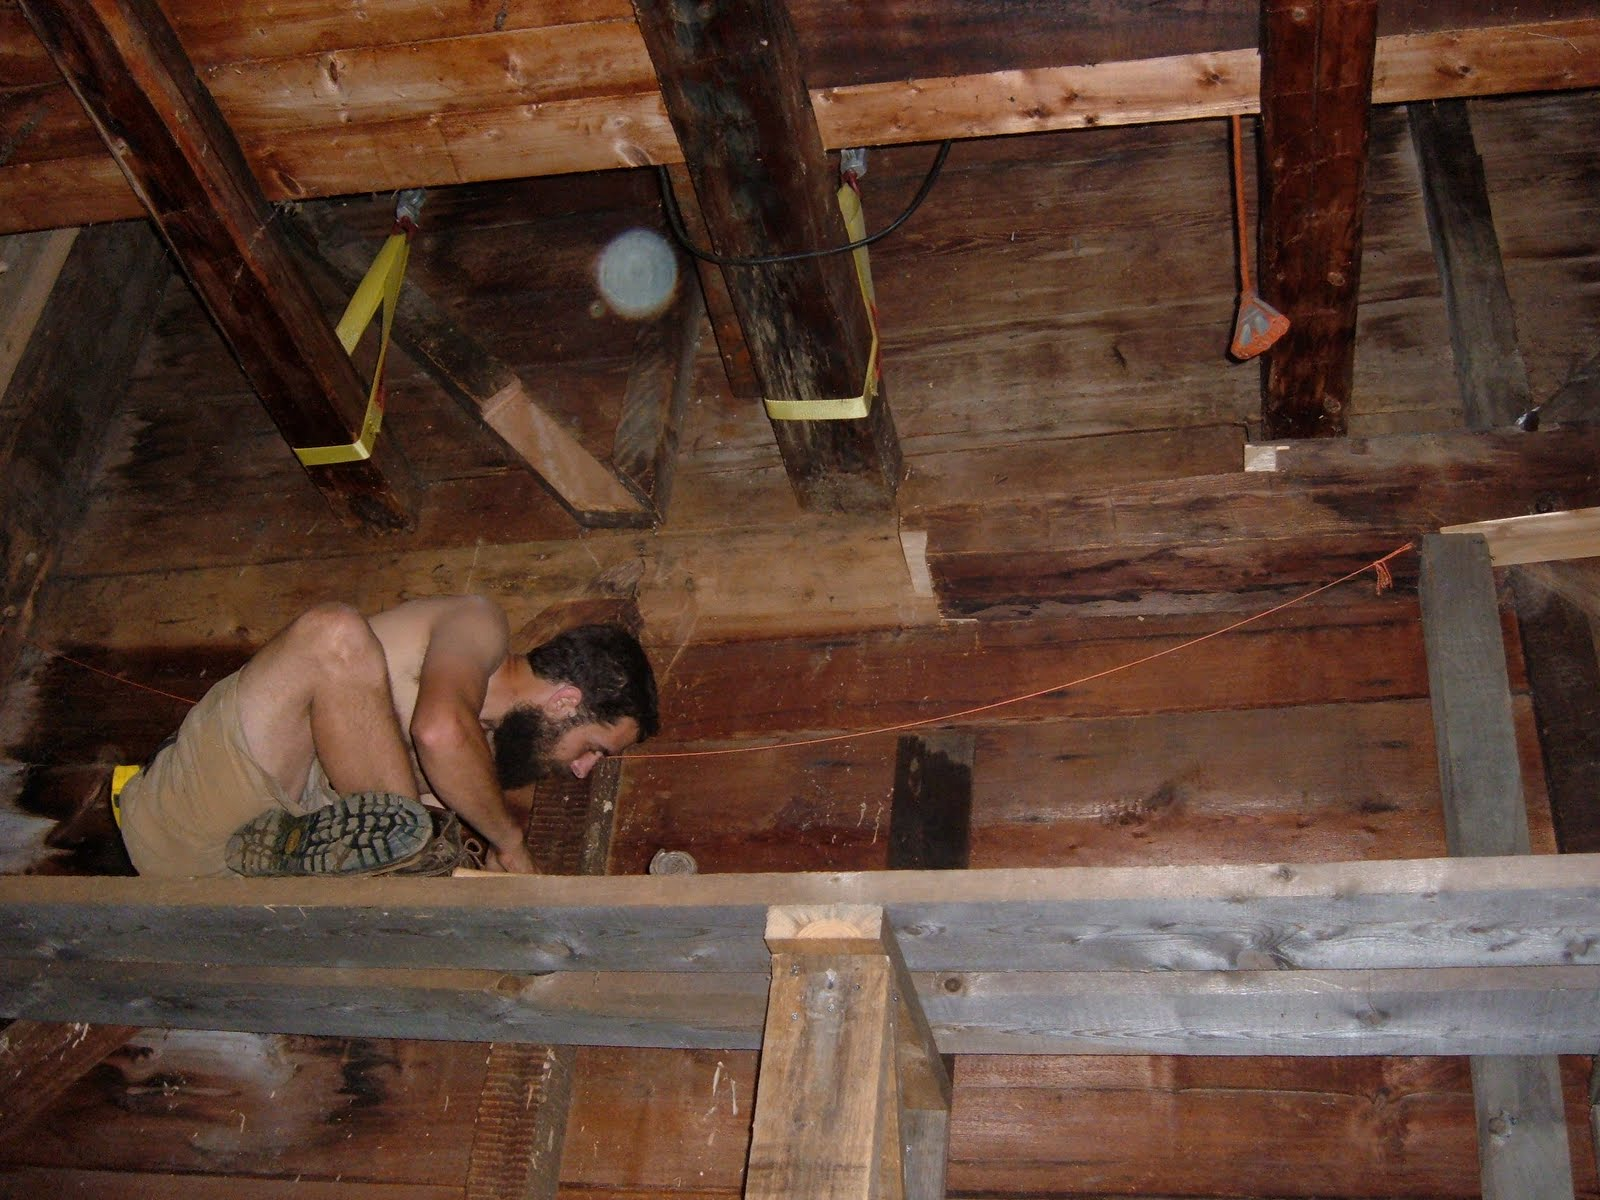 One floor below the girts that had rolled, another girt had significant rot.  The floor joists were suspended while the rotten portion of the girt was repaired.